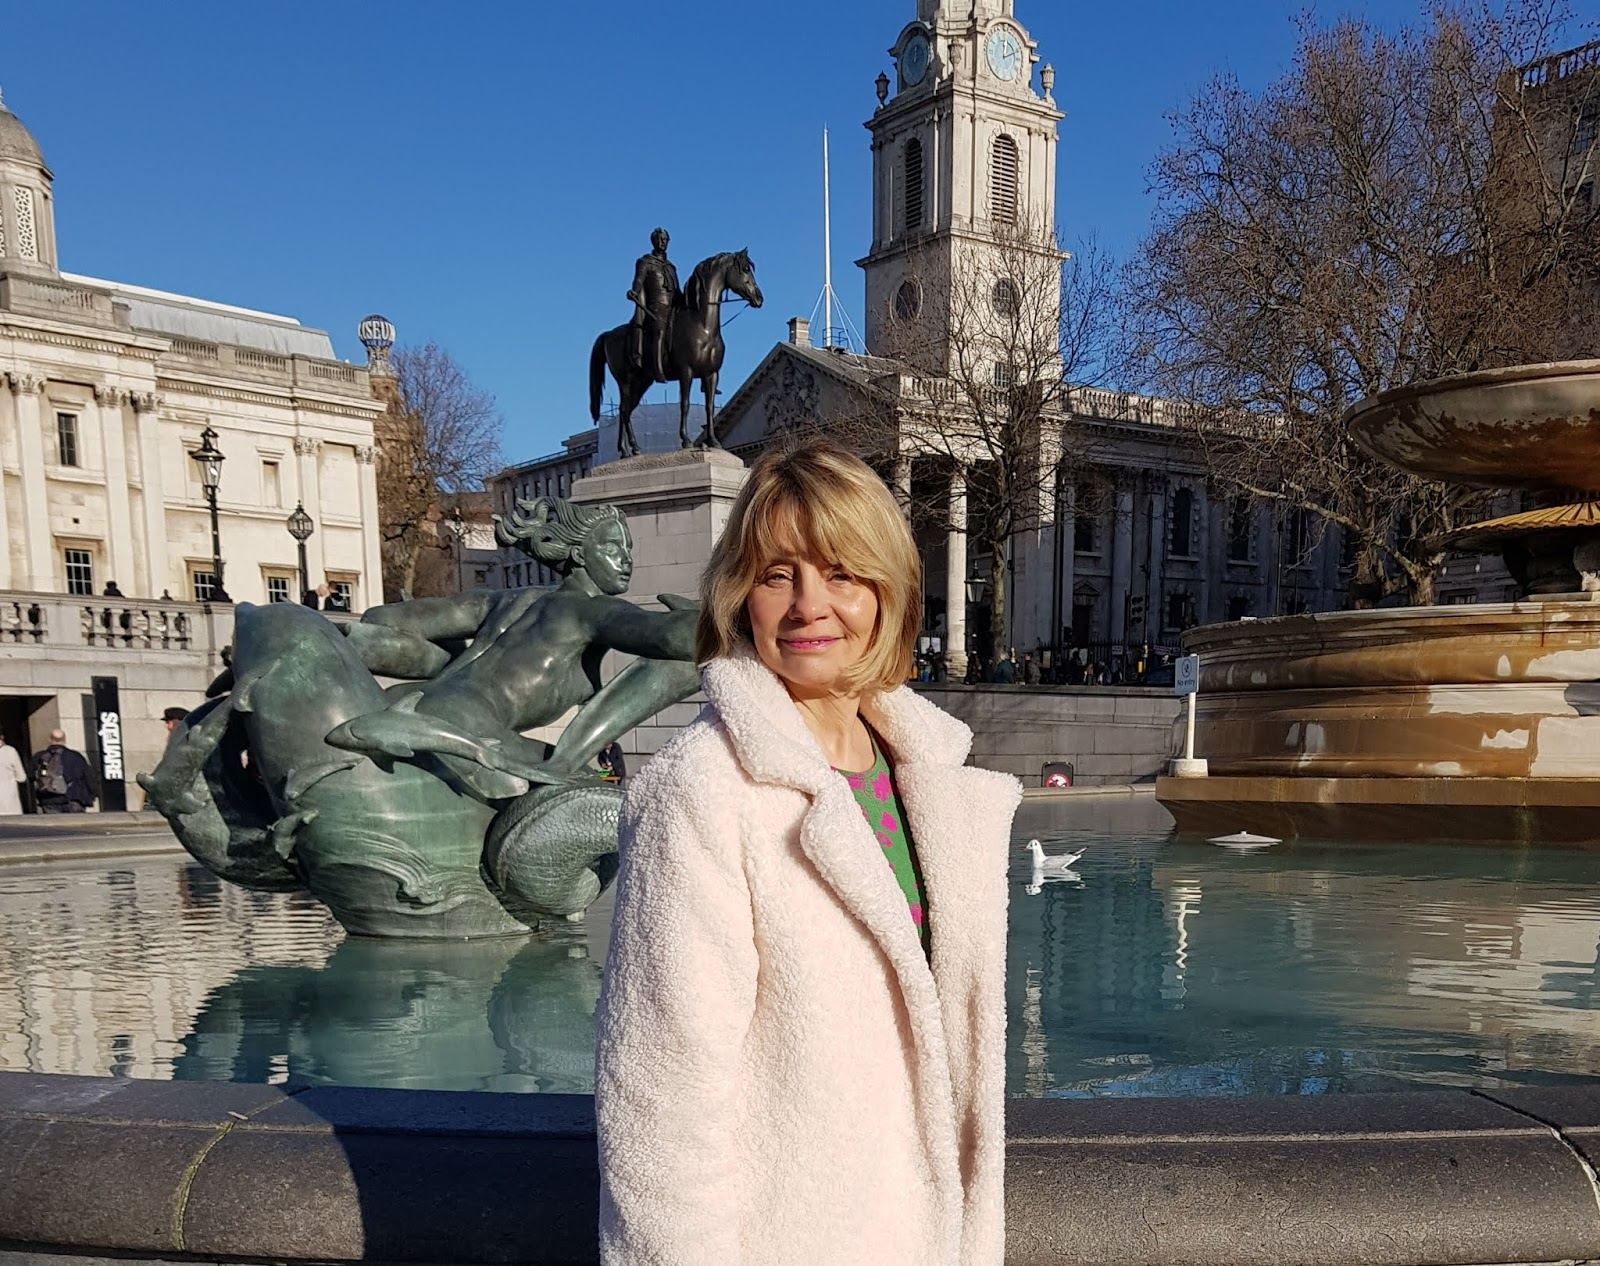 Over 50s blogger Gail Hanlon from Is This Mutton in London's Trafalgar Square